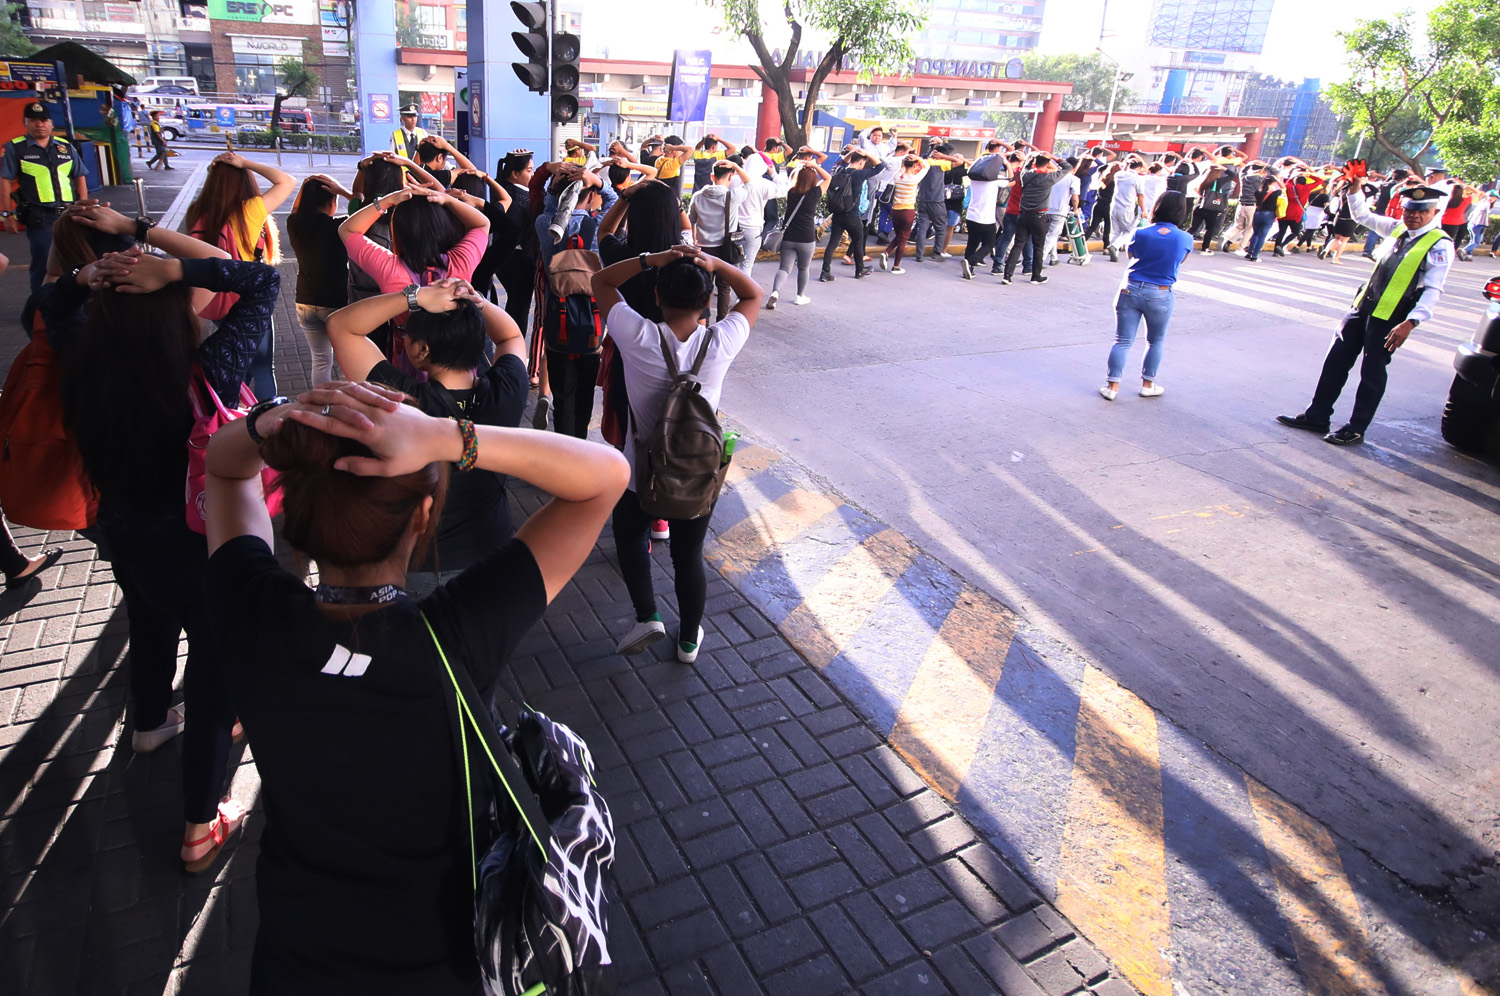 EVACUATION. The SM Mall in Fairview, Quezon City takes part in the 1st Quarter Nationwide Simultaneous Earthquake Drill to prepare for disasters. Photo by Darren Langit/Rappler